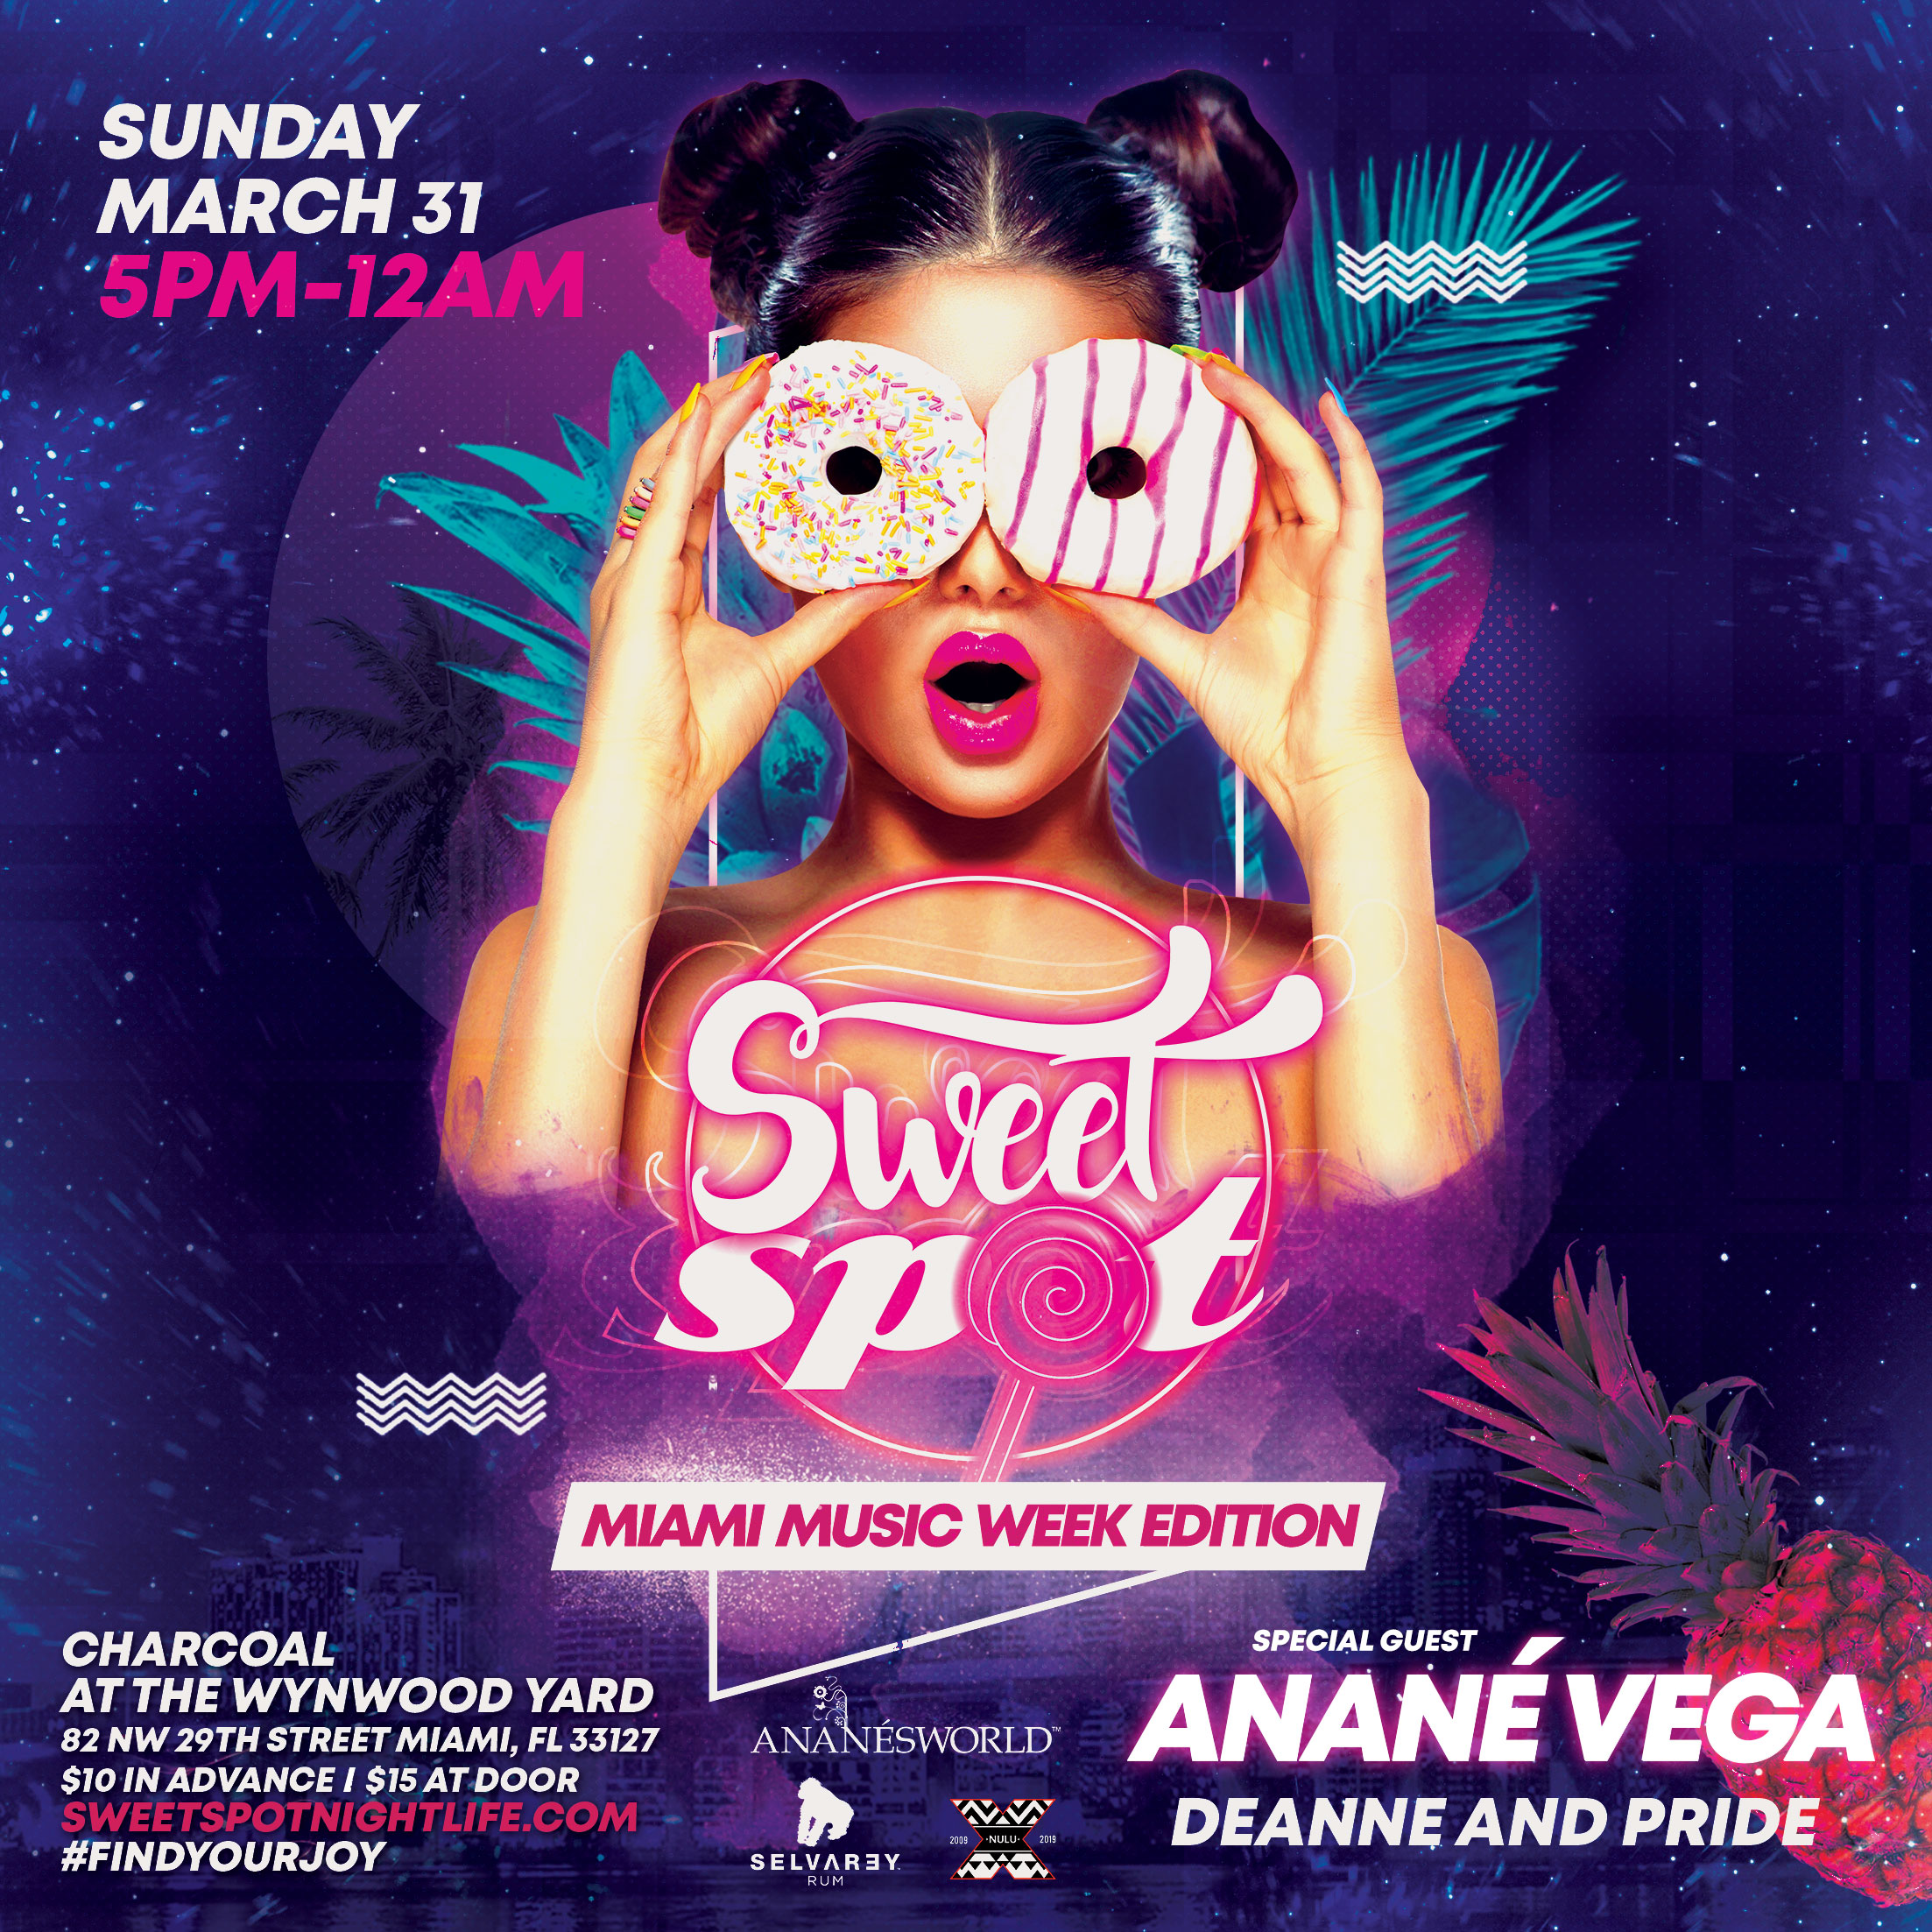 Sweet Spot Miami Music Week Edition w/ Anané Vega, Deanne and Pride Image